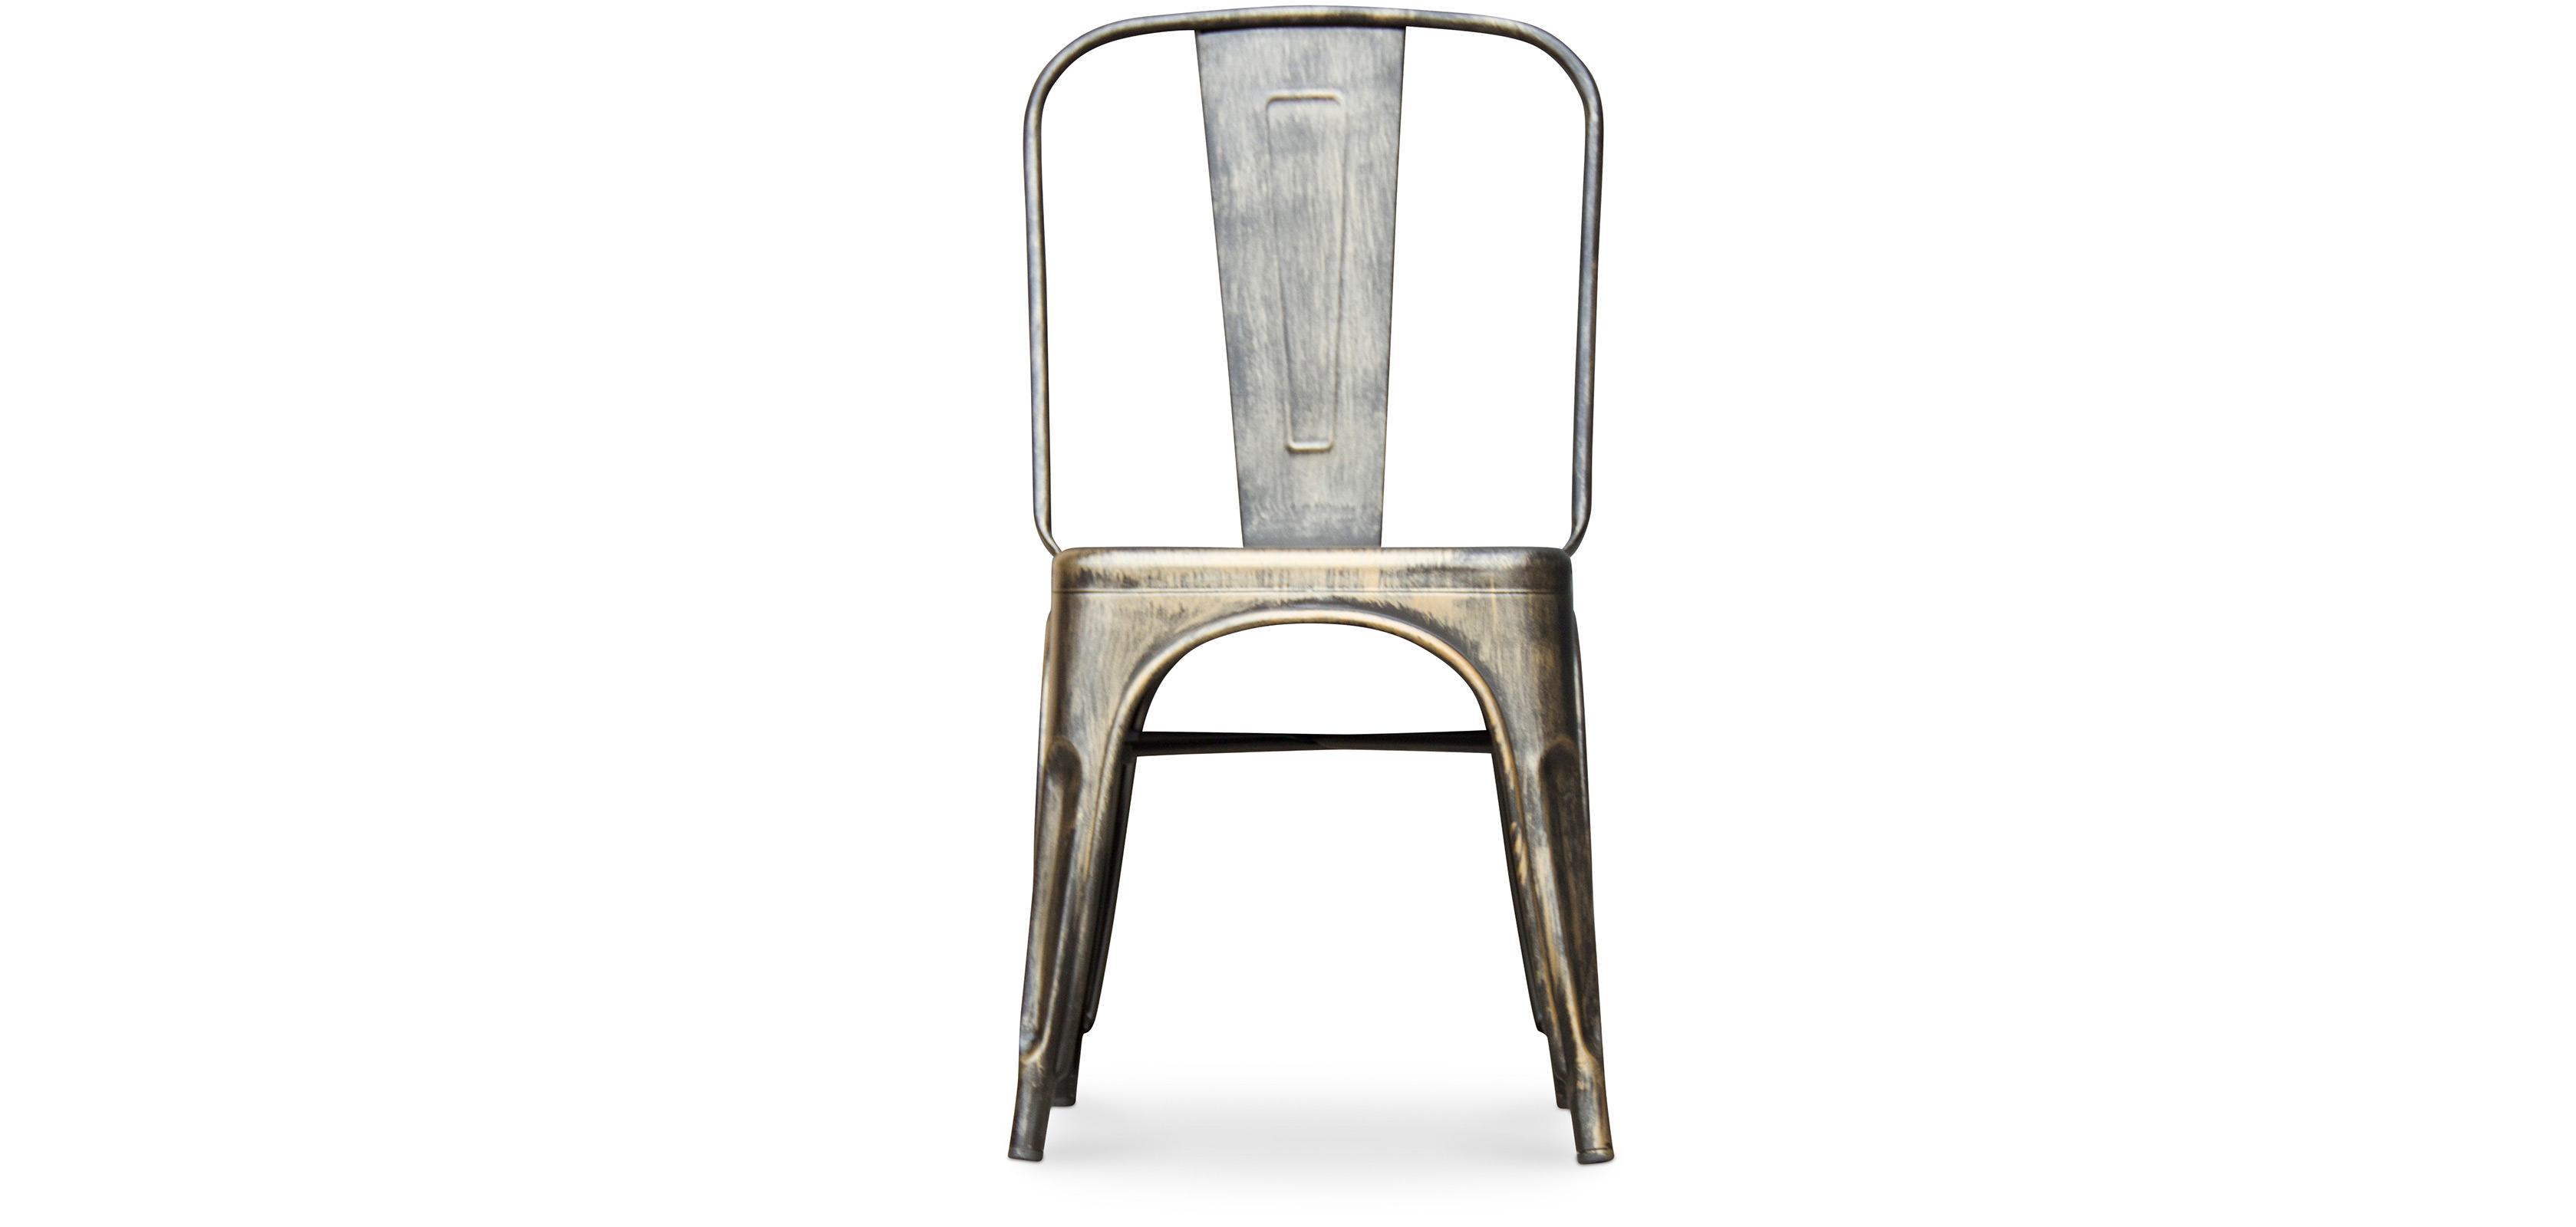 tolix chair square seat xavier pauchard style metal